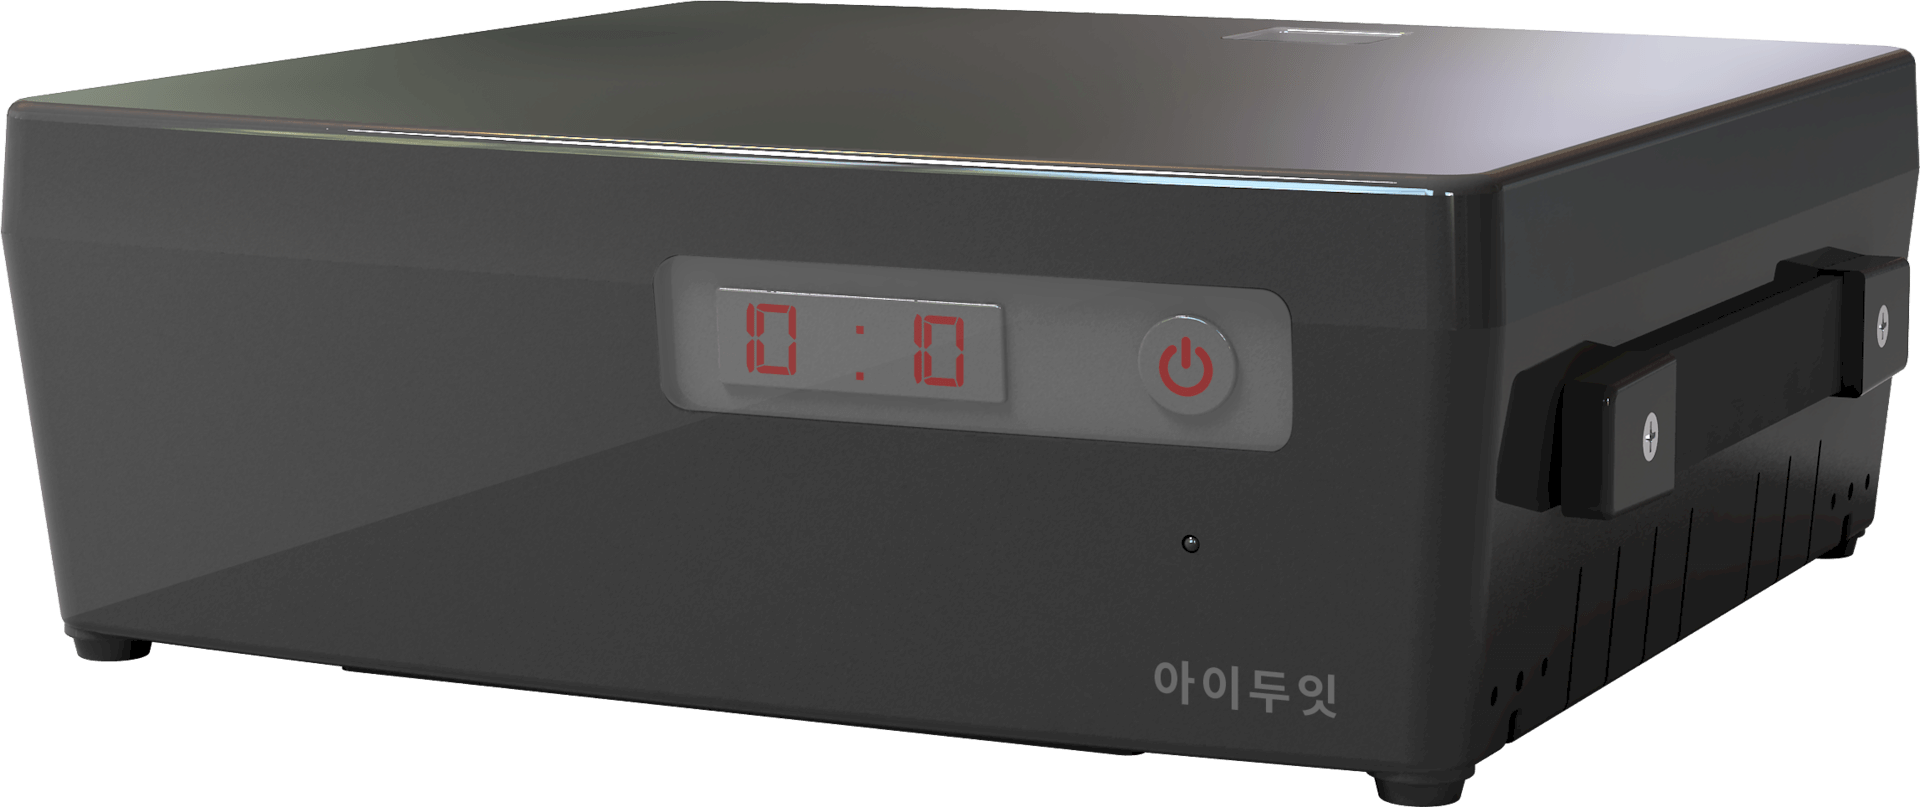 https://logicsquare-seoul.s3.ap-northeast-2.amazonaws.com/a01a9273-bfde-4729-aed6-7548b5b66c1d.png not available